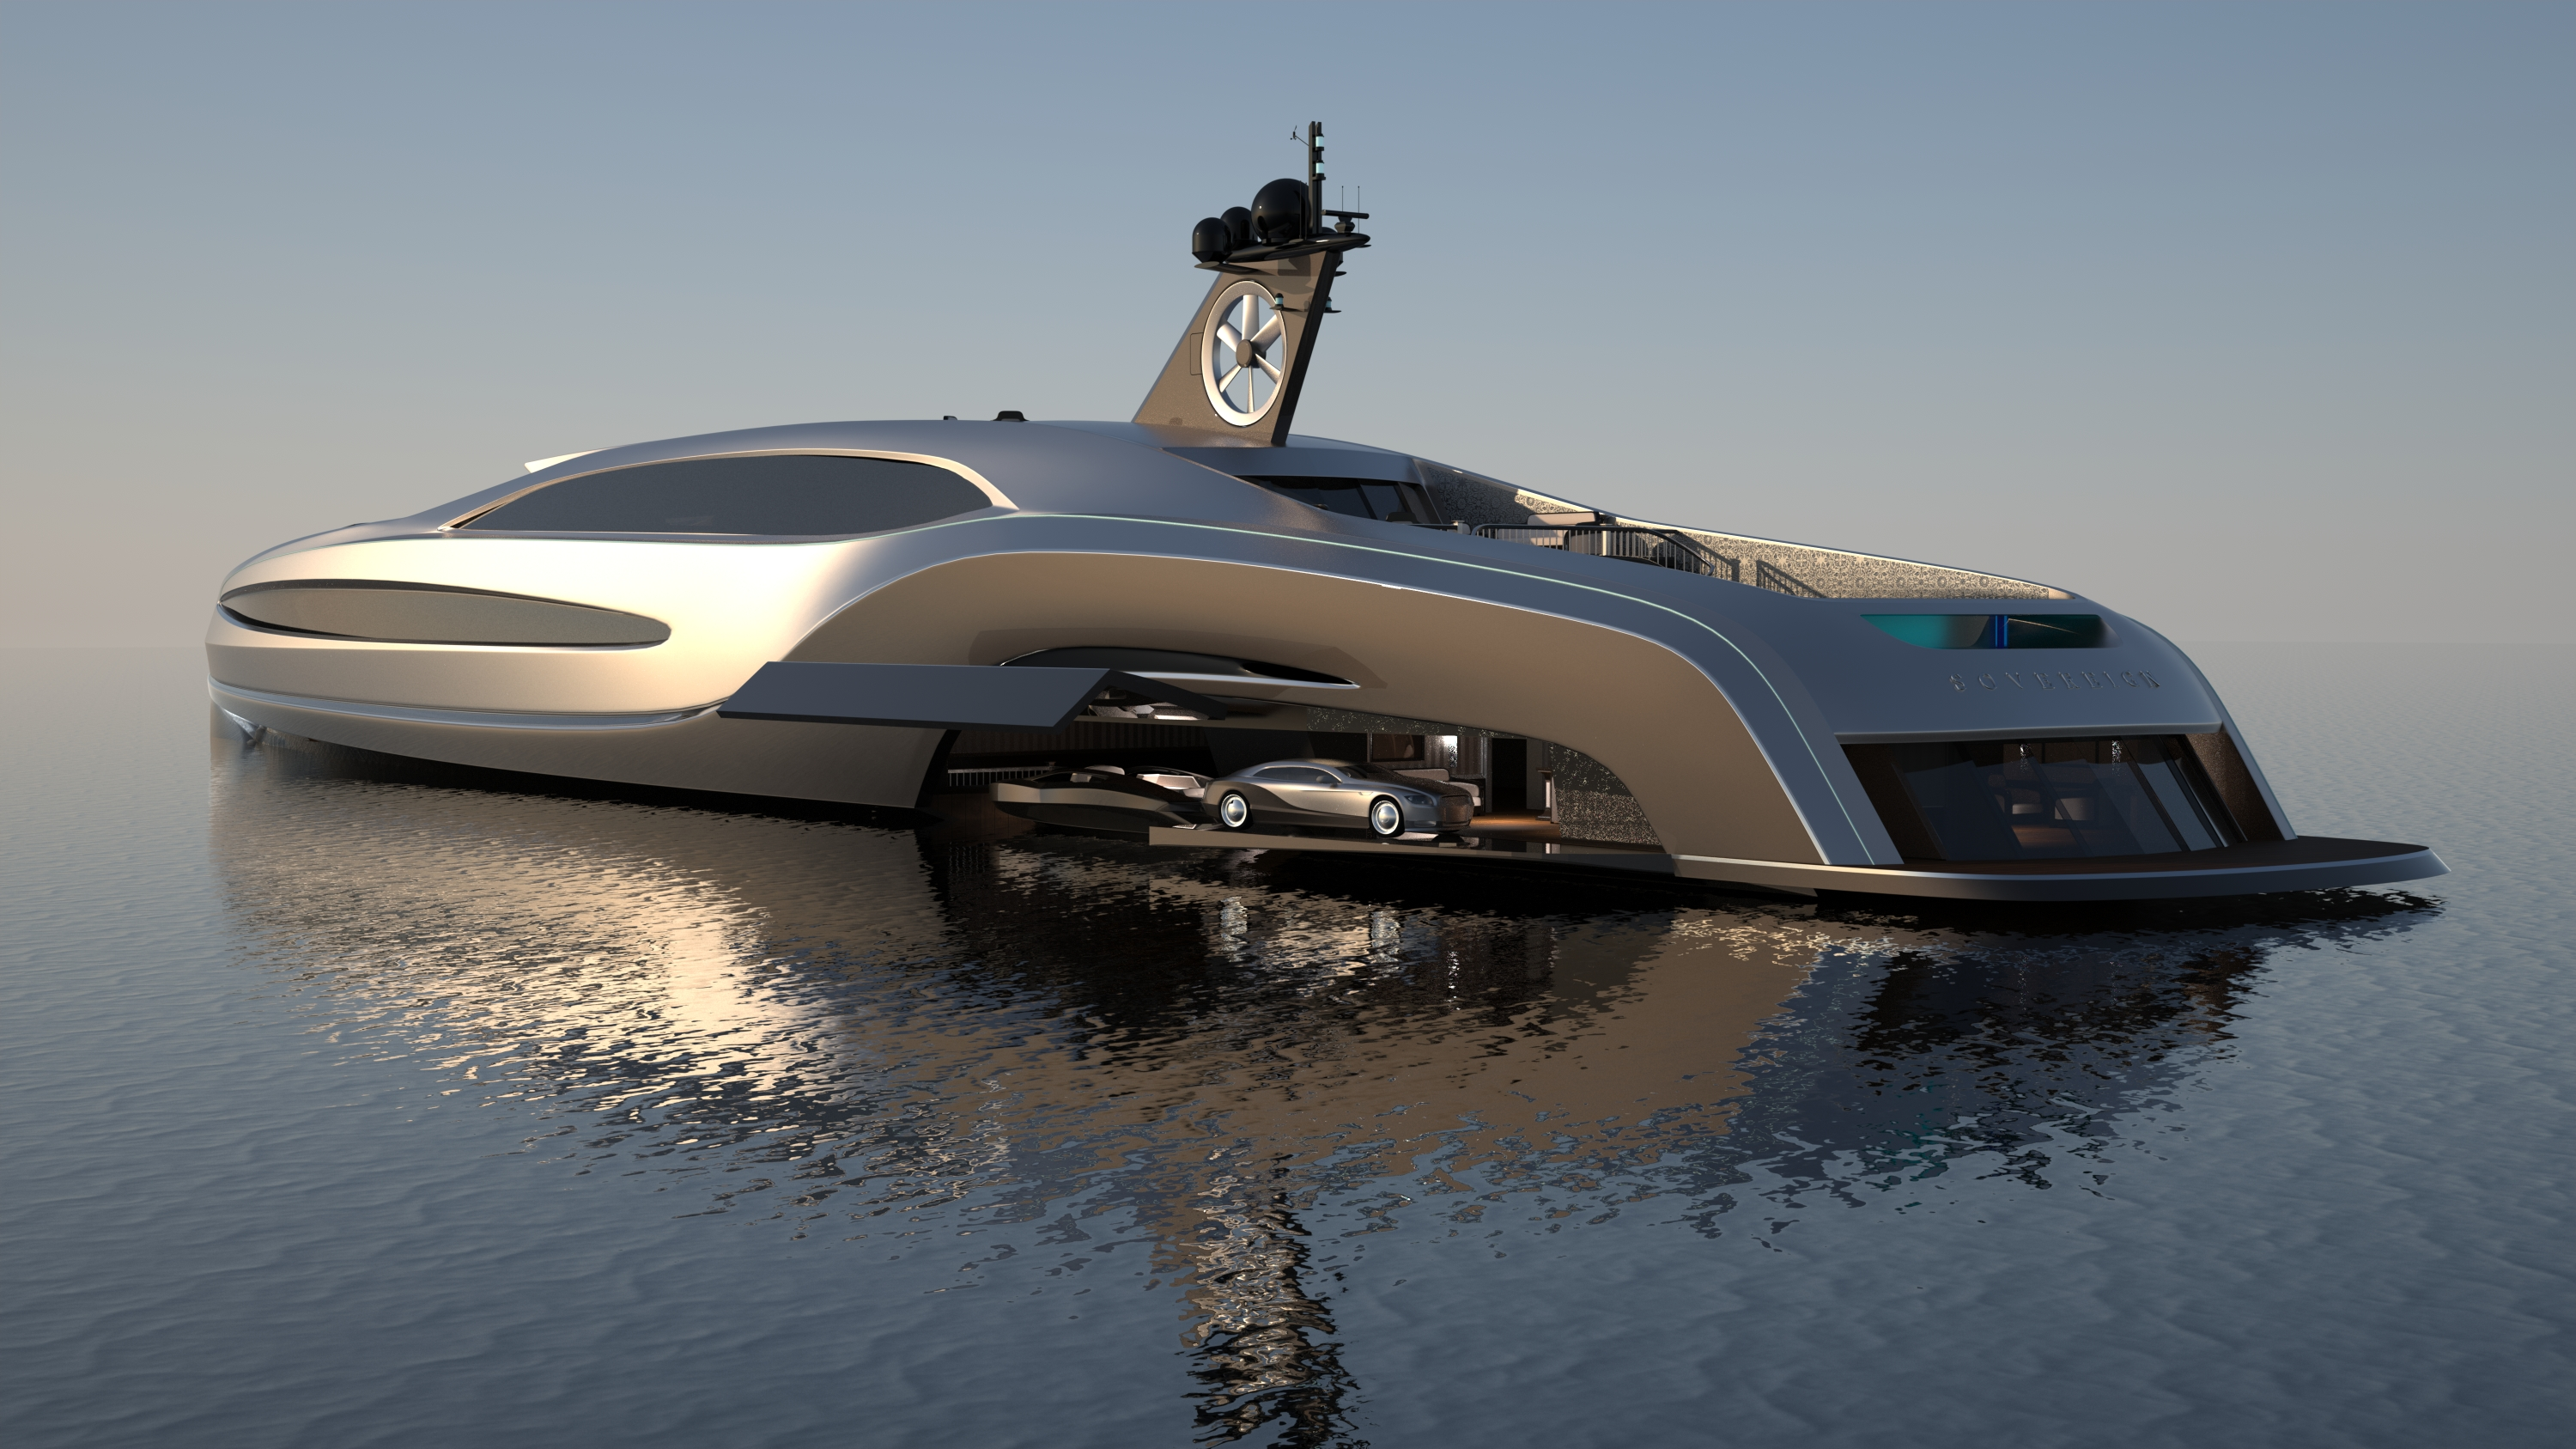 Sovereign The Limousine Shaped Superyacht Fit For A King Cnn Travel